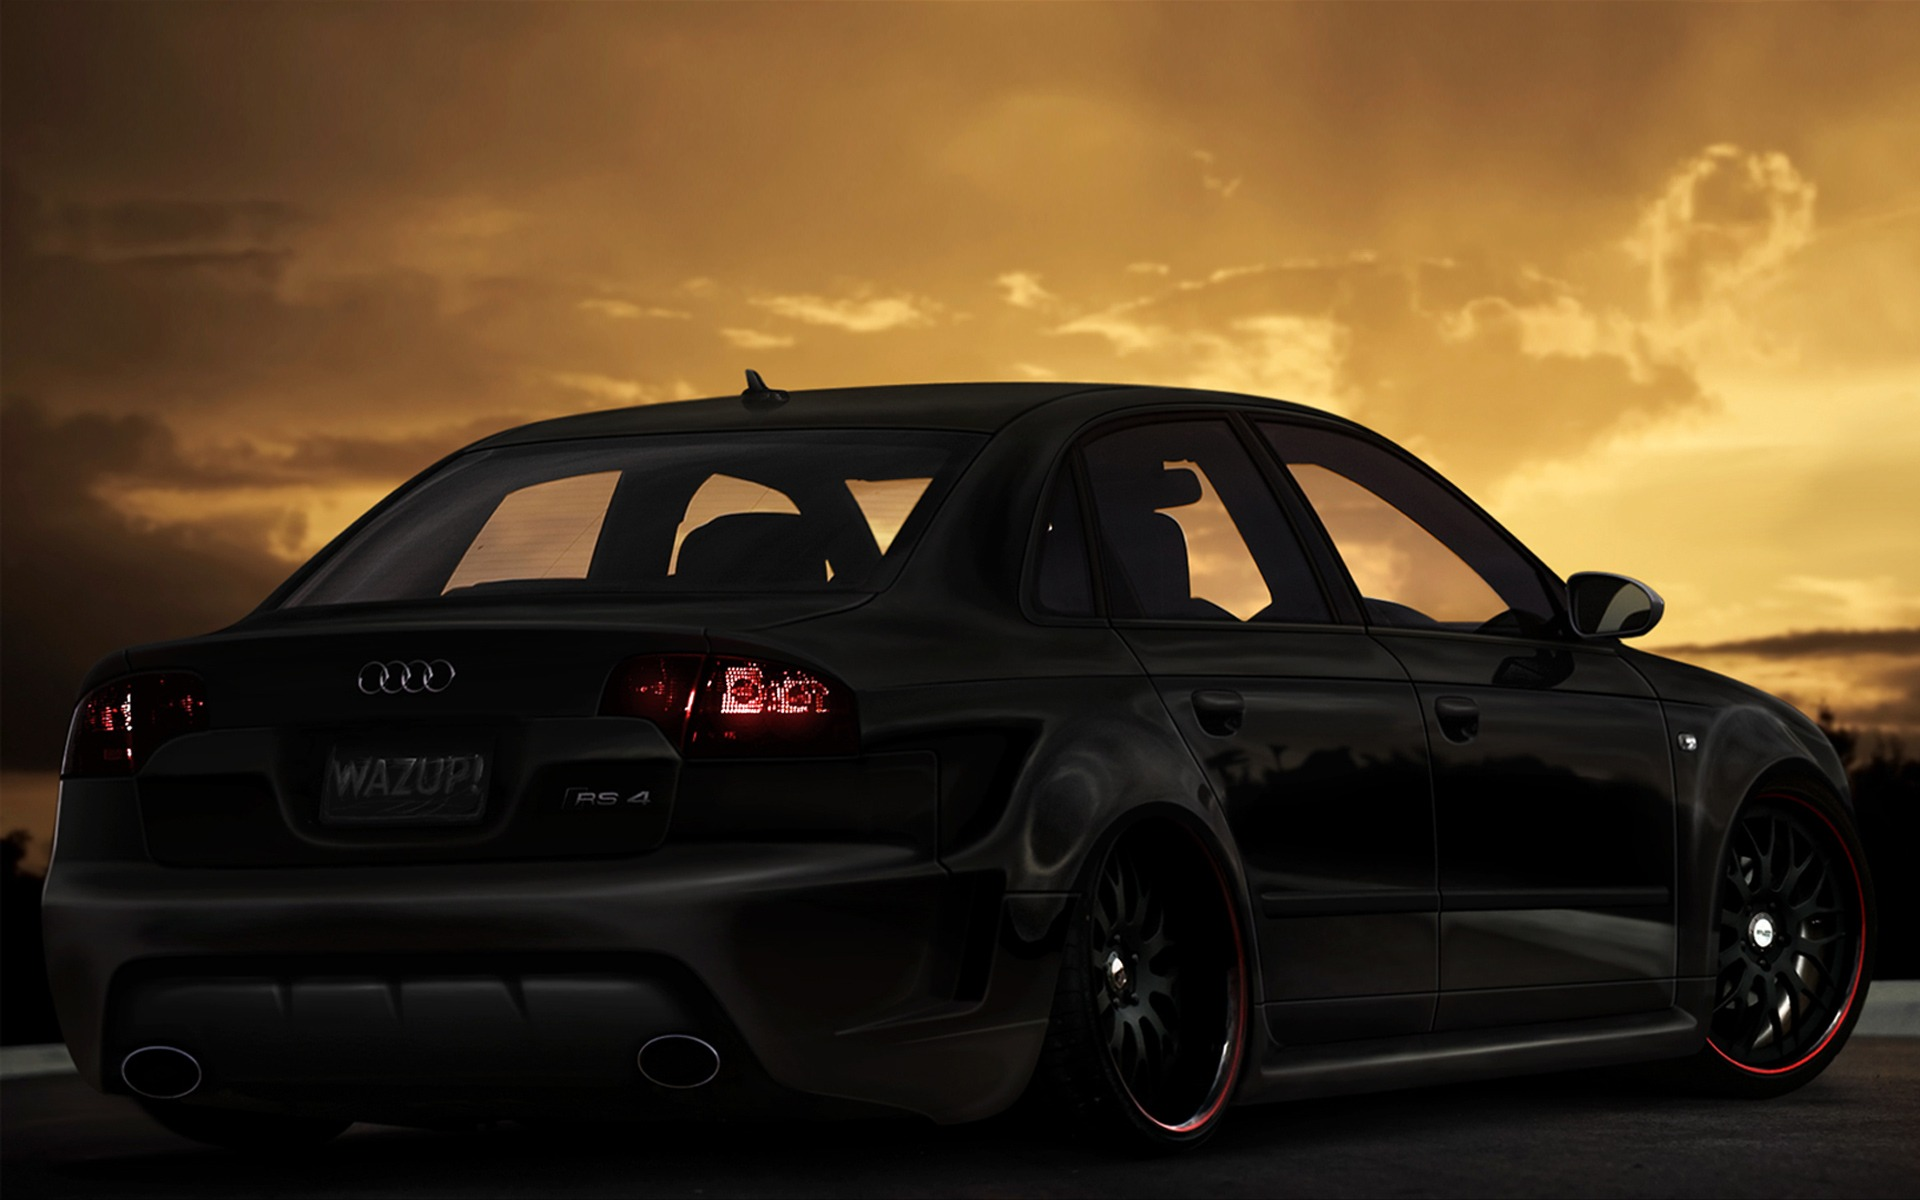 Bright Idea Pictures Of Audi Cars Amazing Audi Car HD Wallpaper 1920x1200